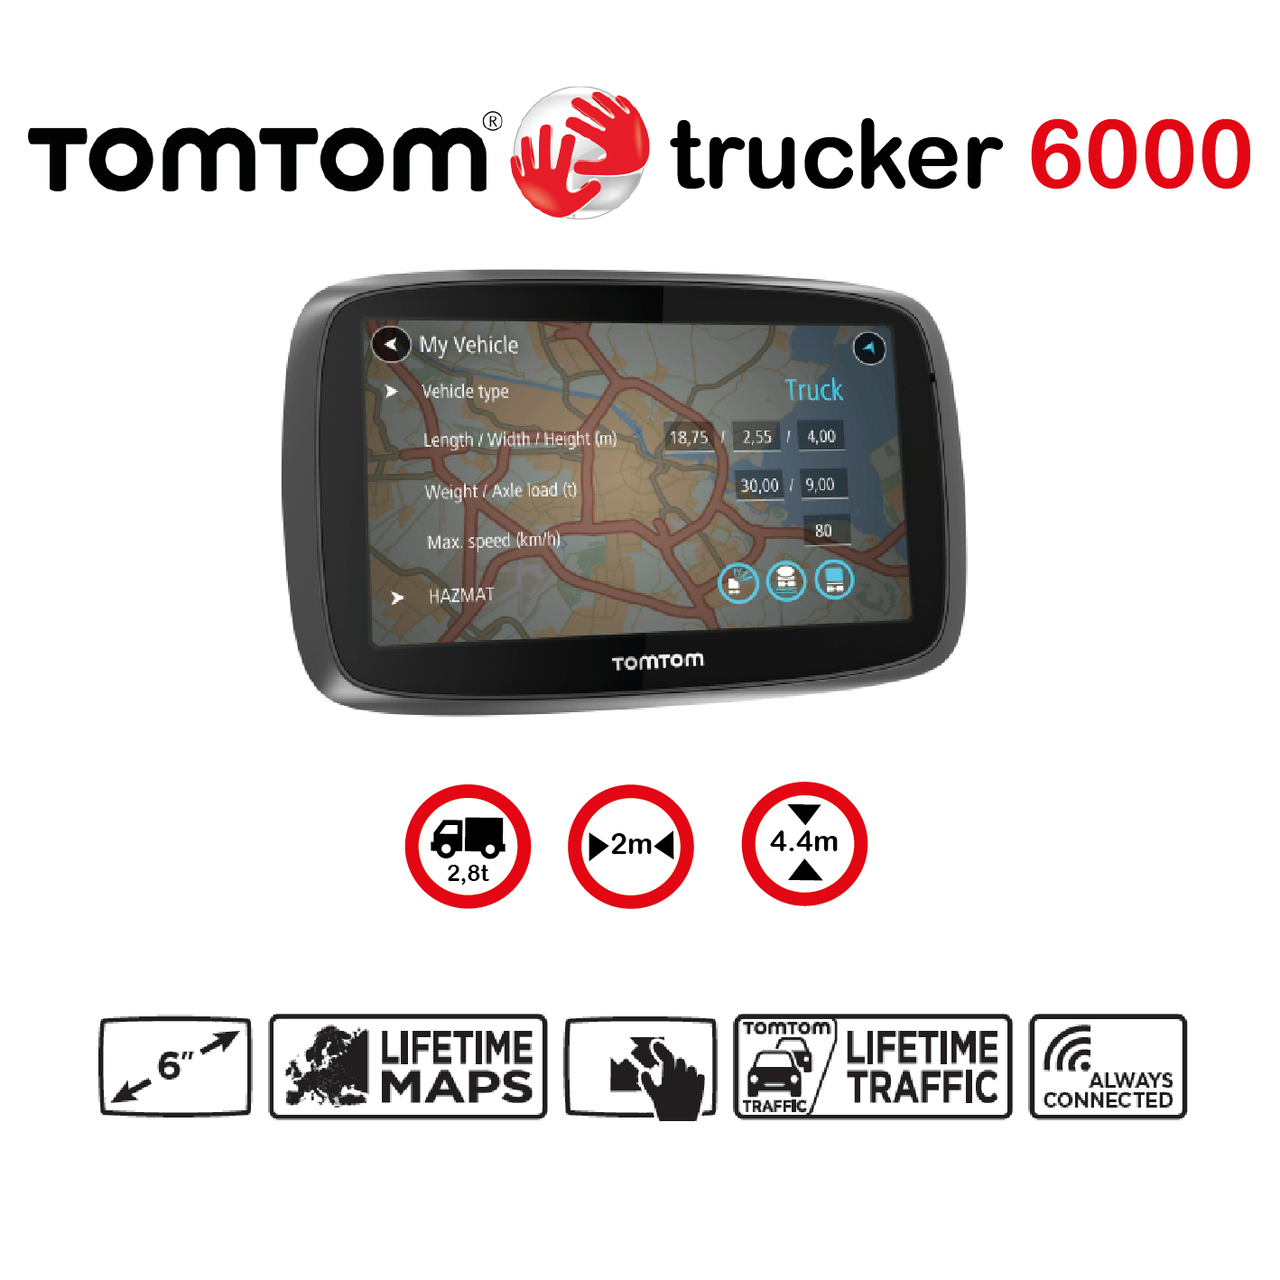 tomtom trucker 6000 gps led expert. Black Bedroom Furniture Sets. Home Design Ideas